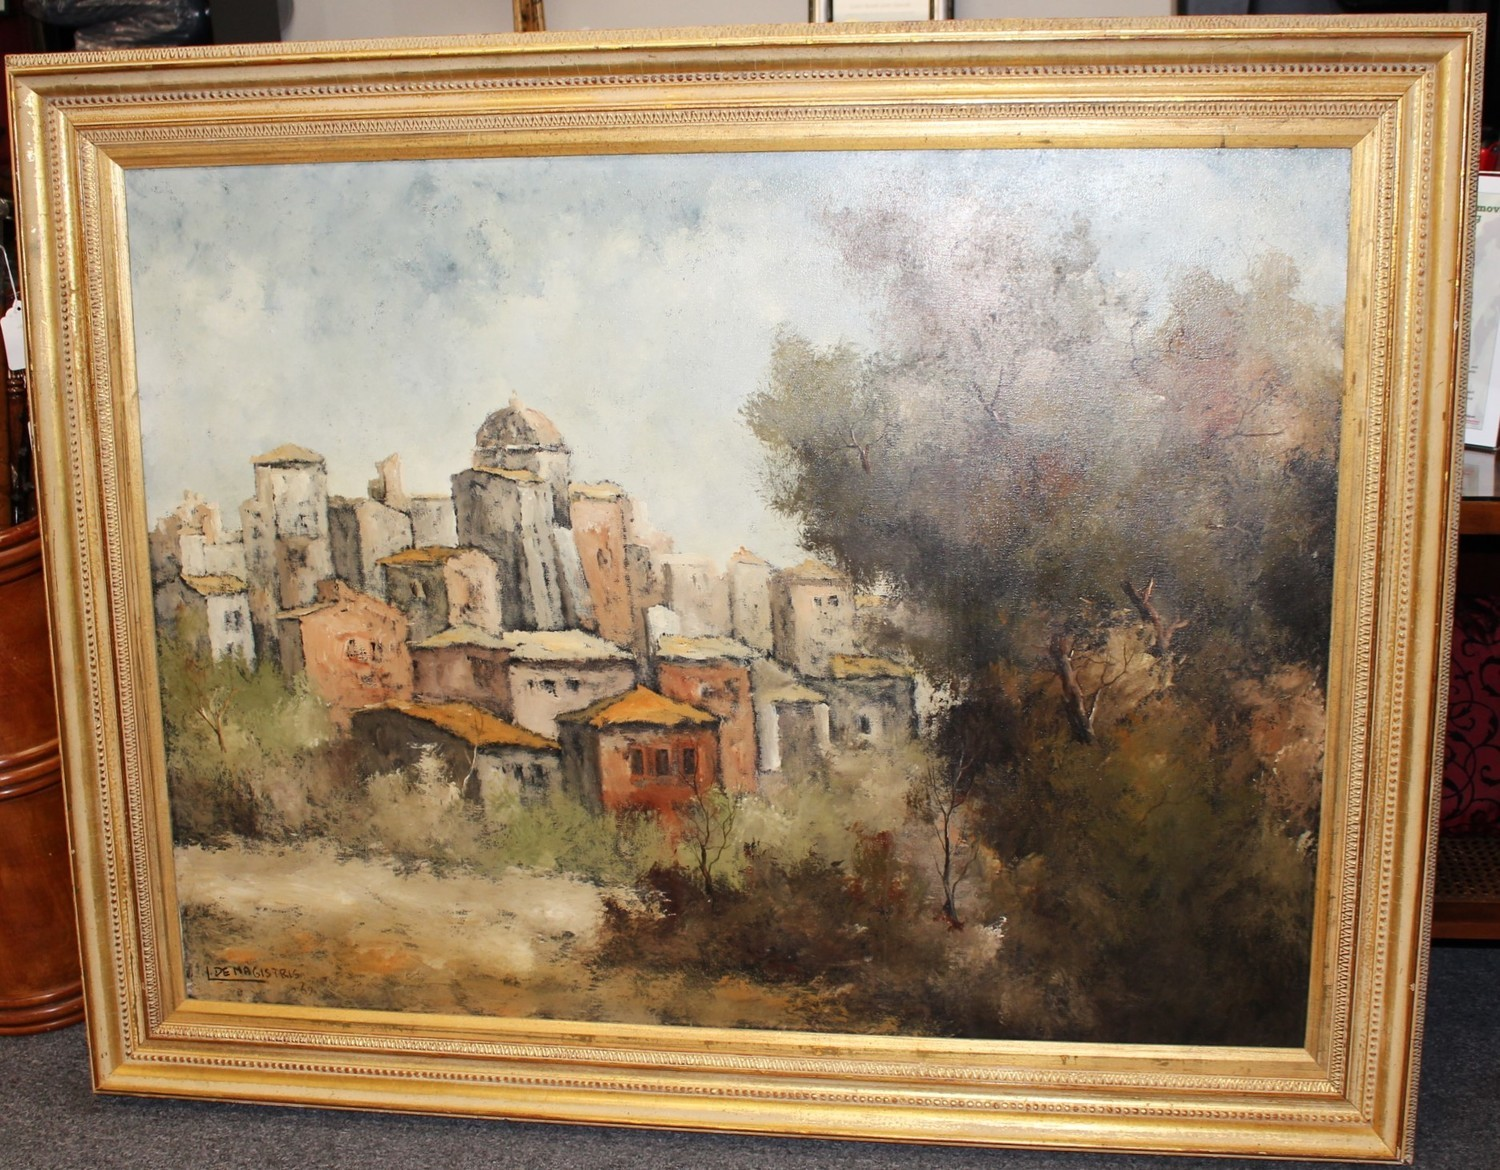 1967 DeMagistris 56x44 Framed Italian Oil on Canvas Painting, Signed